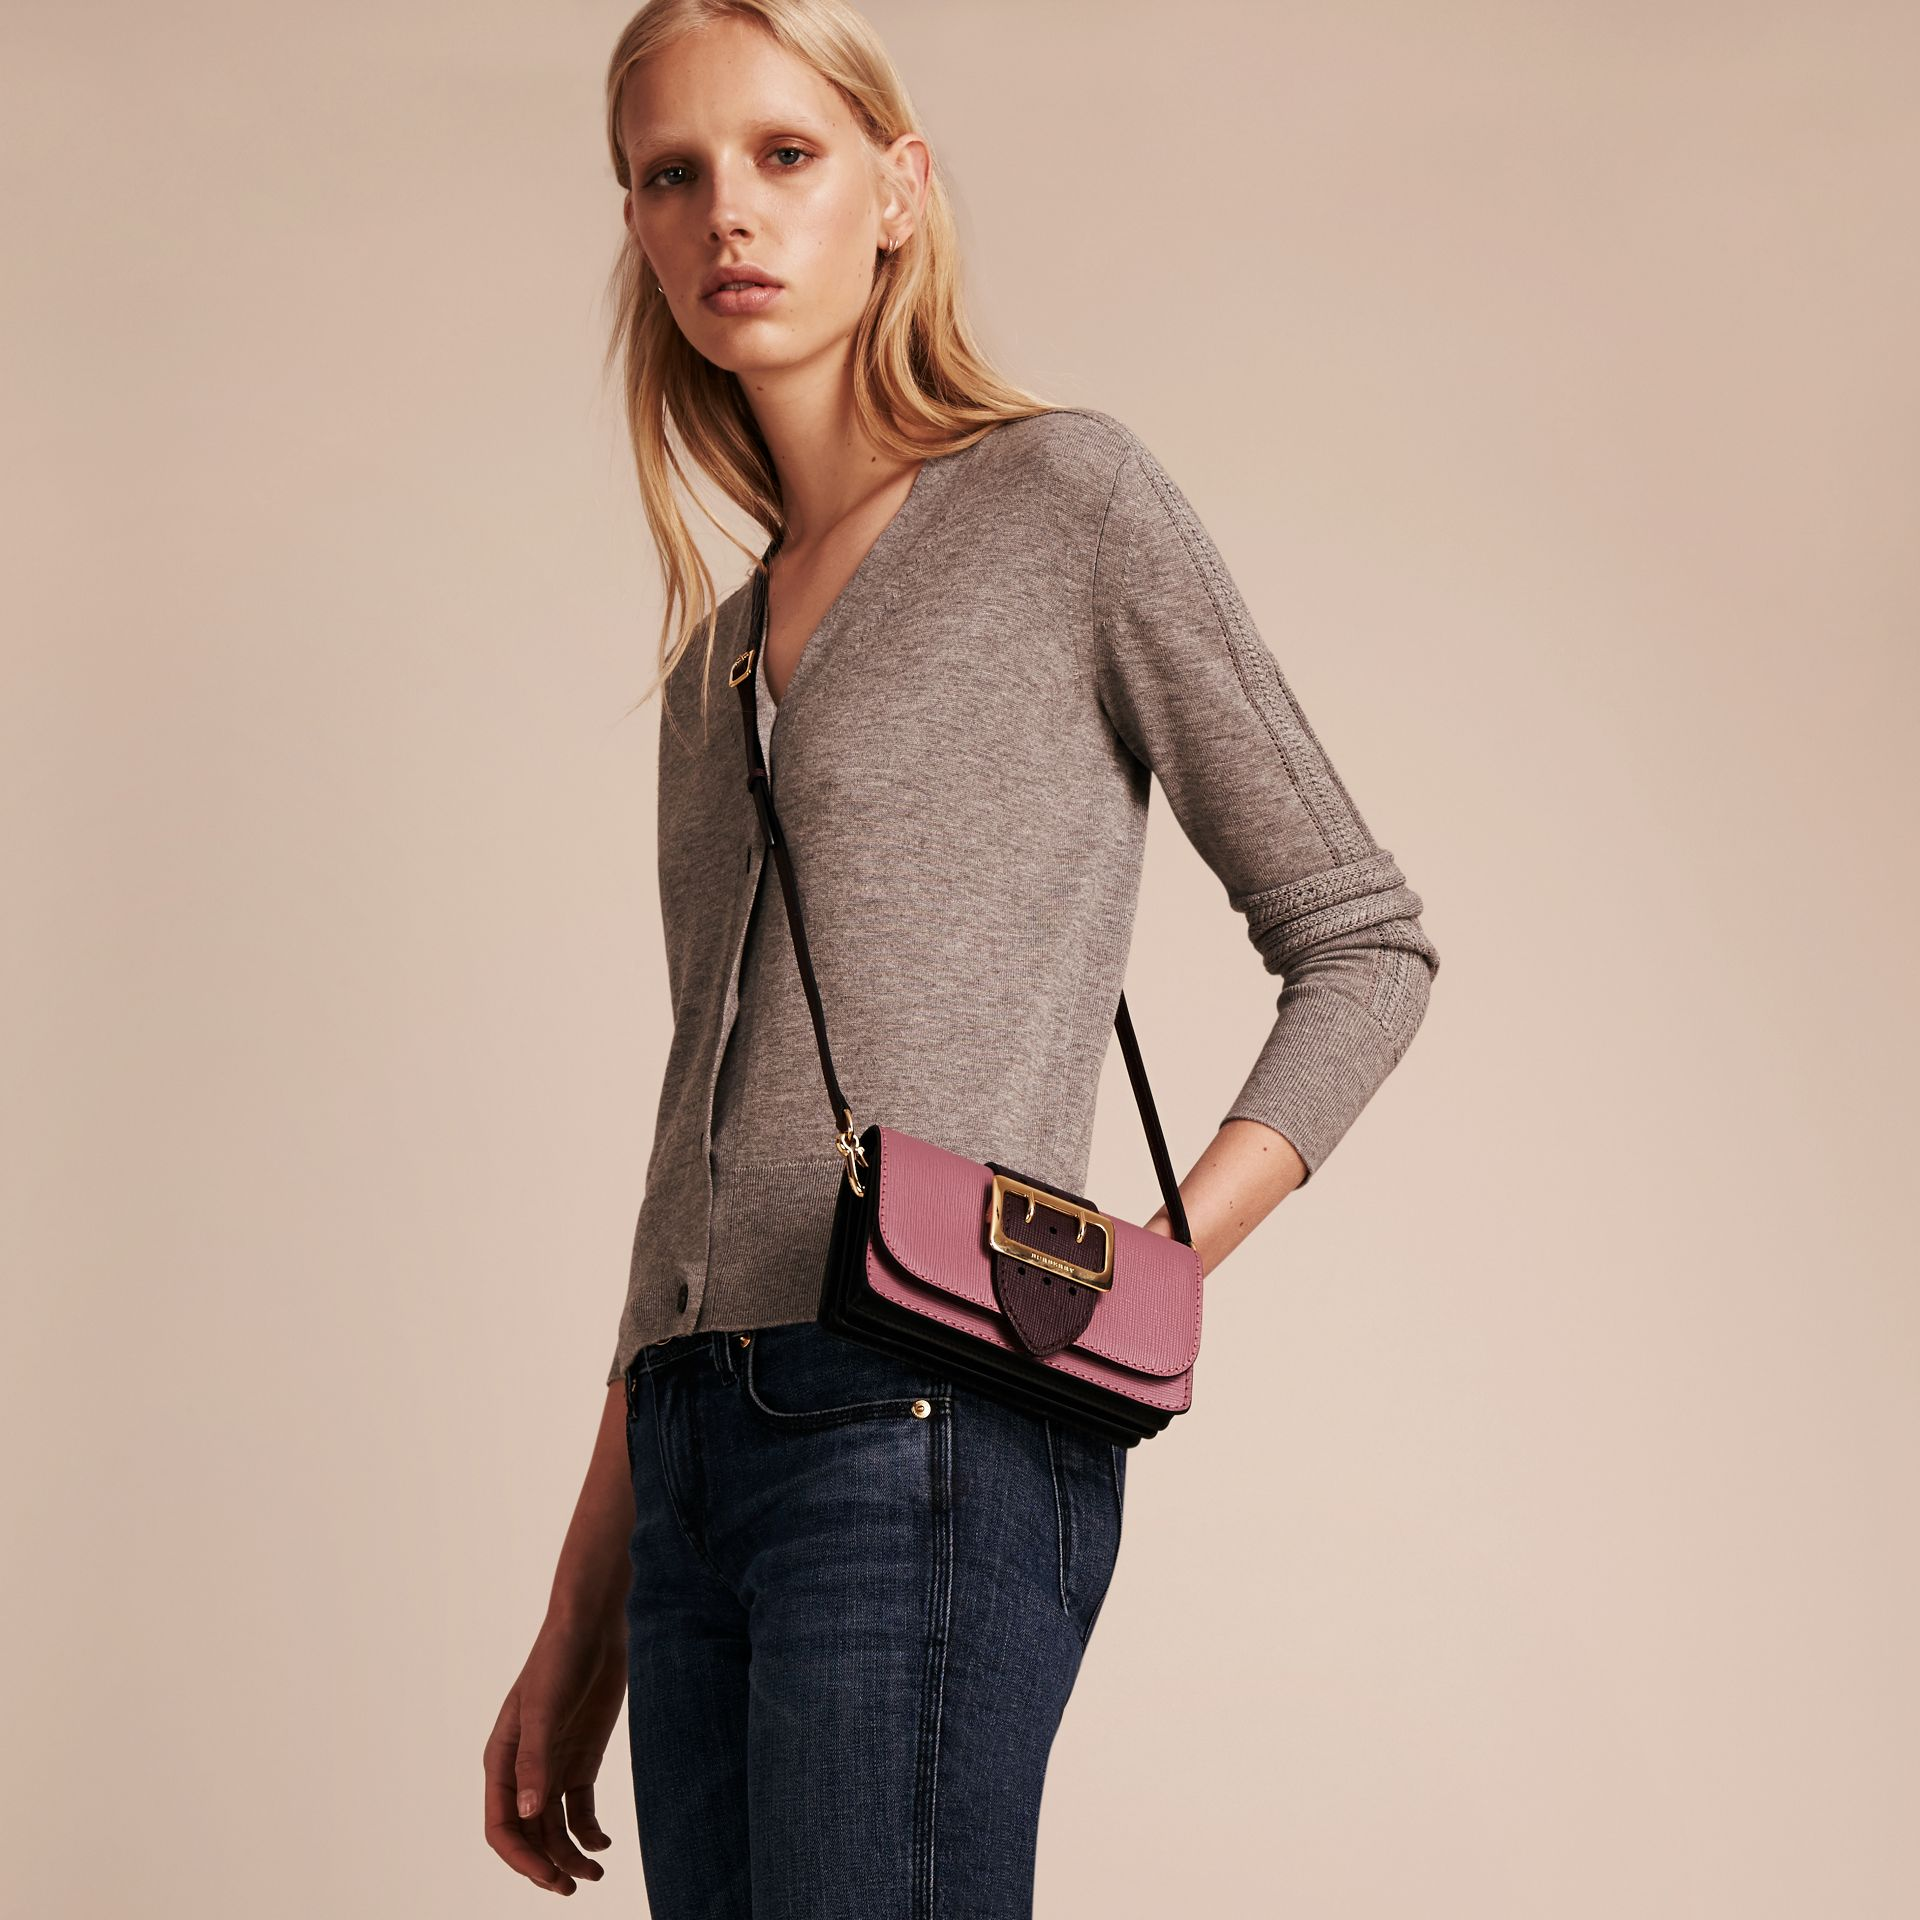 Dusky pink/ burgundy The Small Buckle Bag in Textured Leather Dusky Pink/ Burgundy - gallery image 3